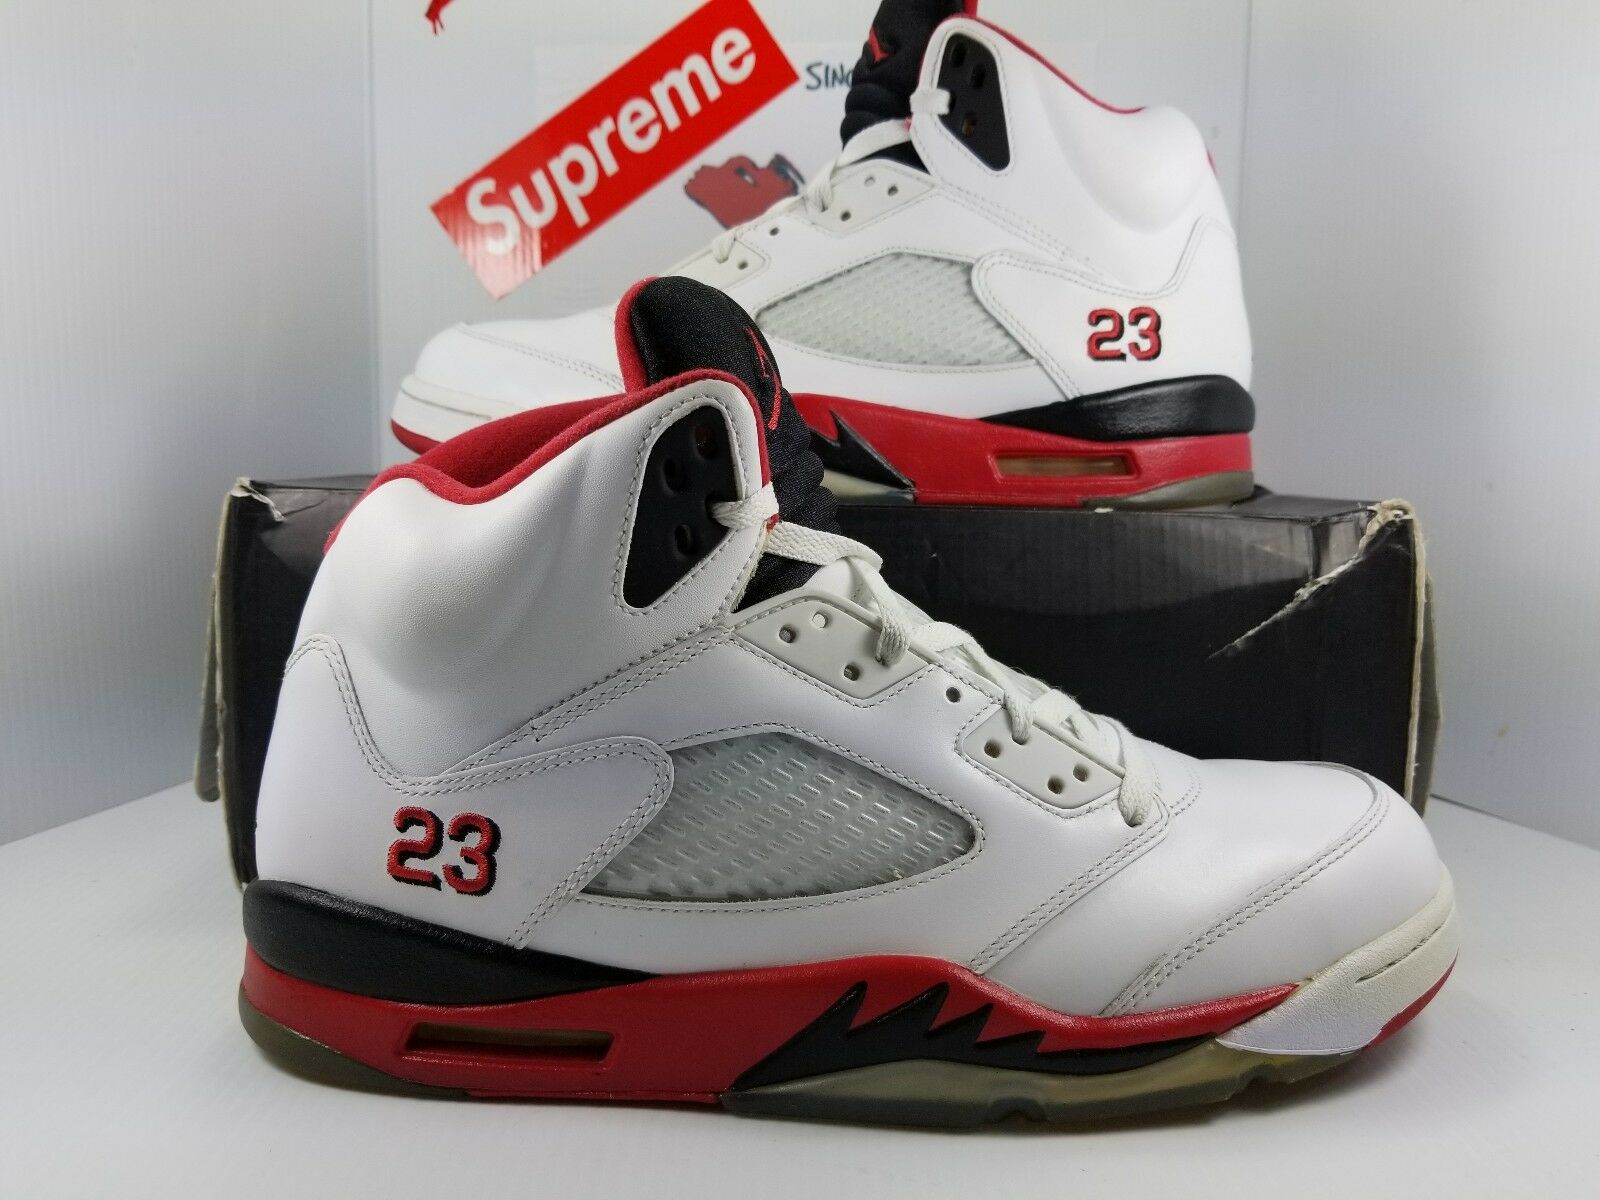 on sale 94343 1116c Jordan 5 Fire (136027 120) Size 11.5 Red noctsg4790-Athletic Shoes